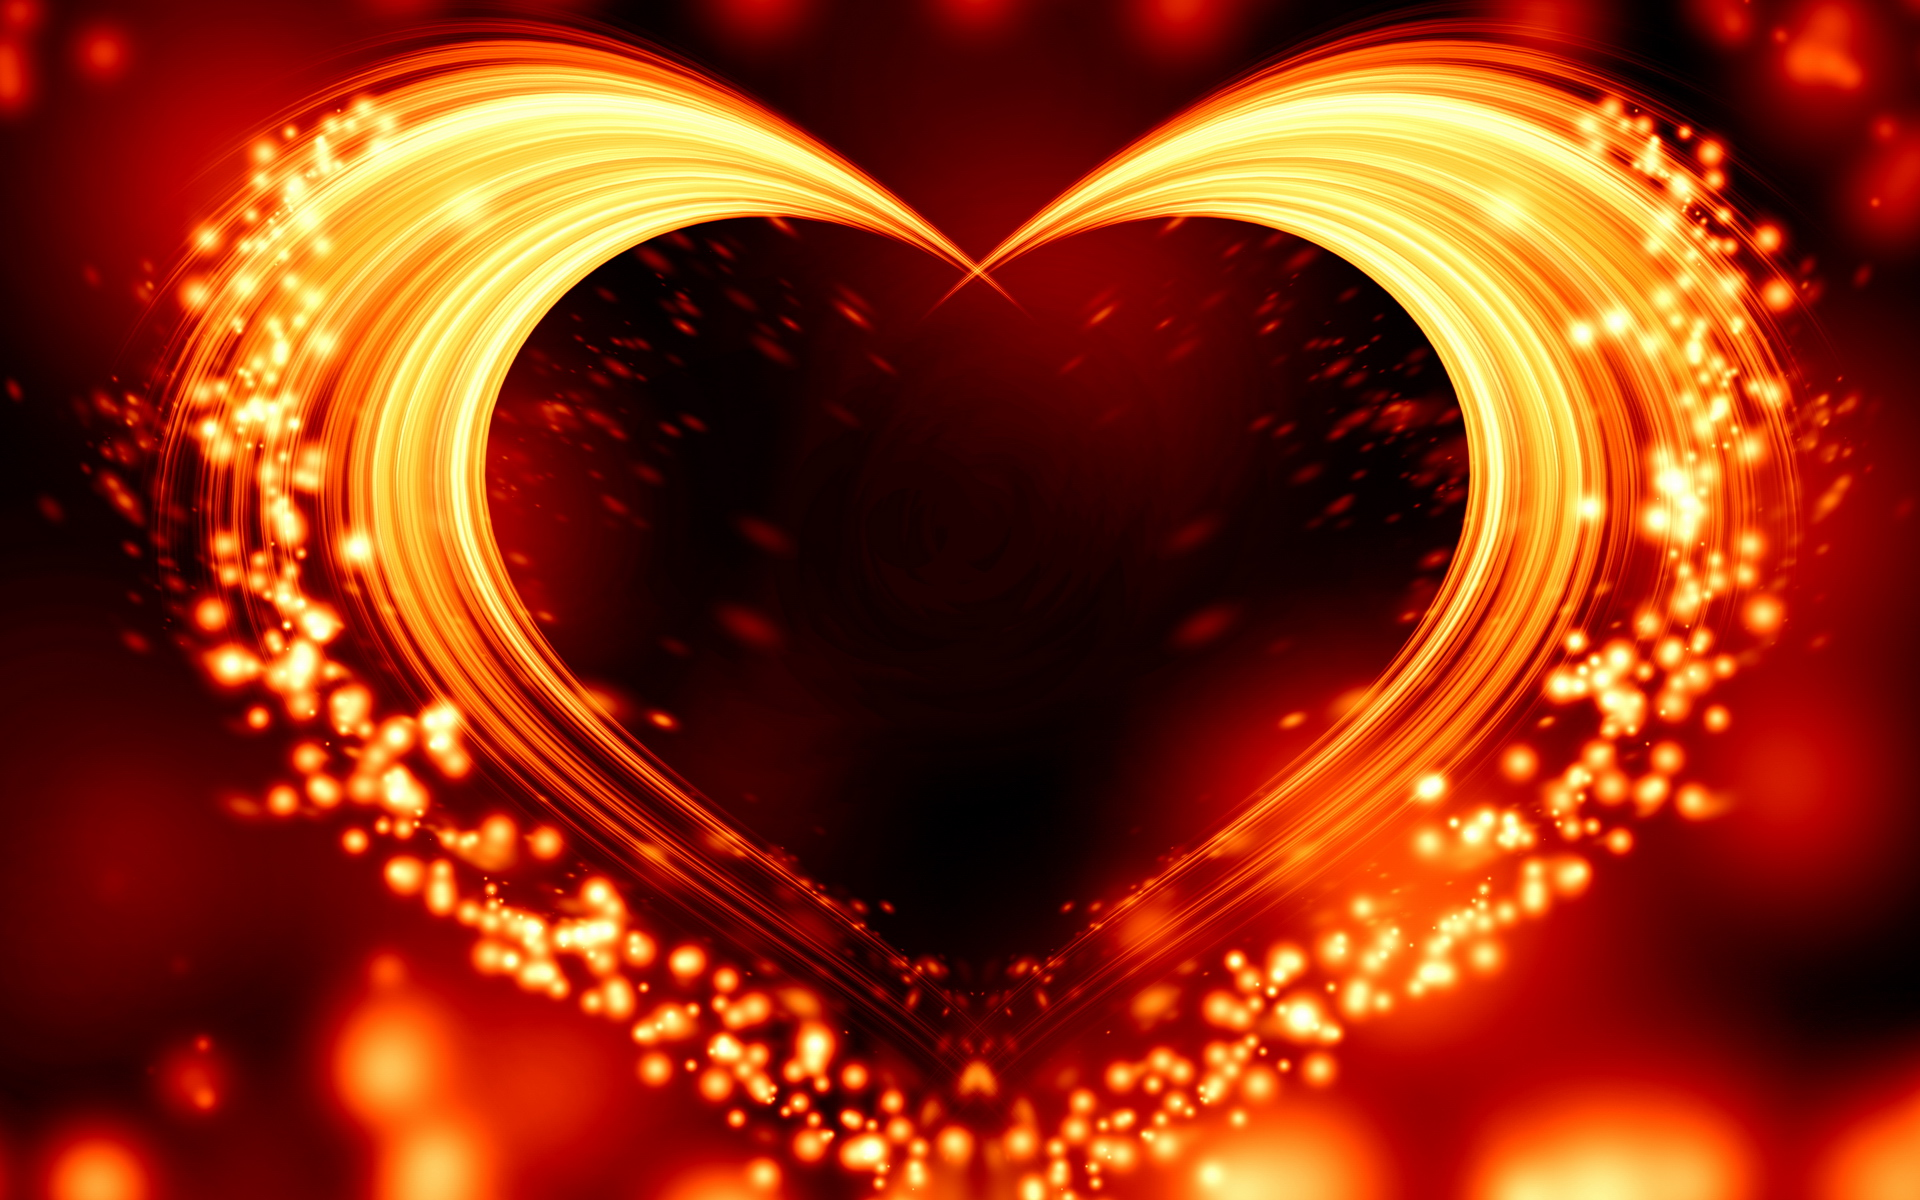 Why love the heart